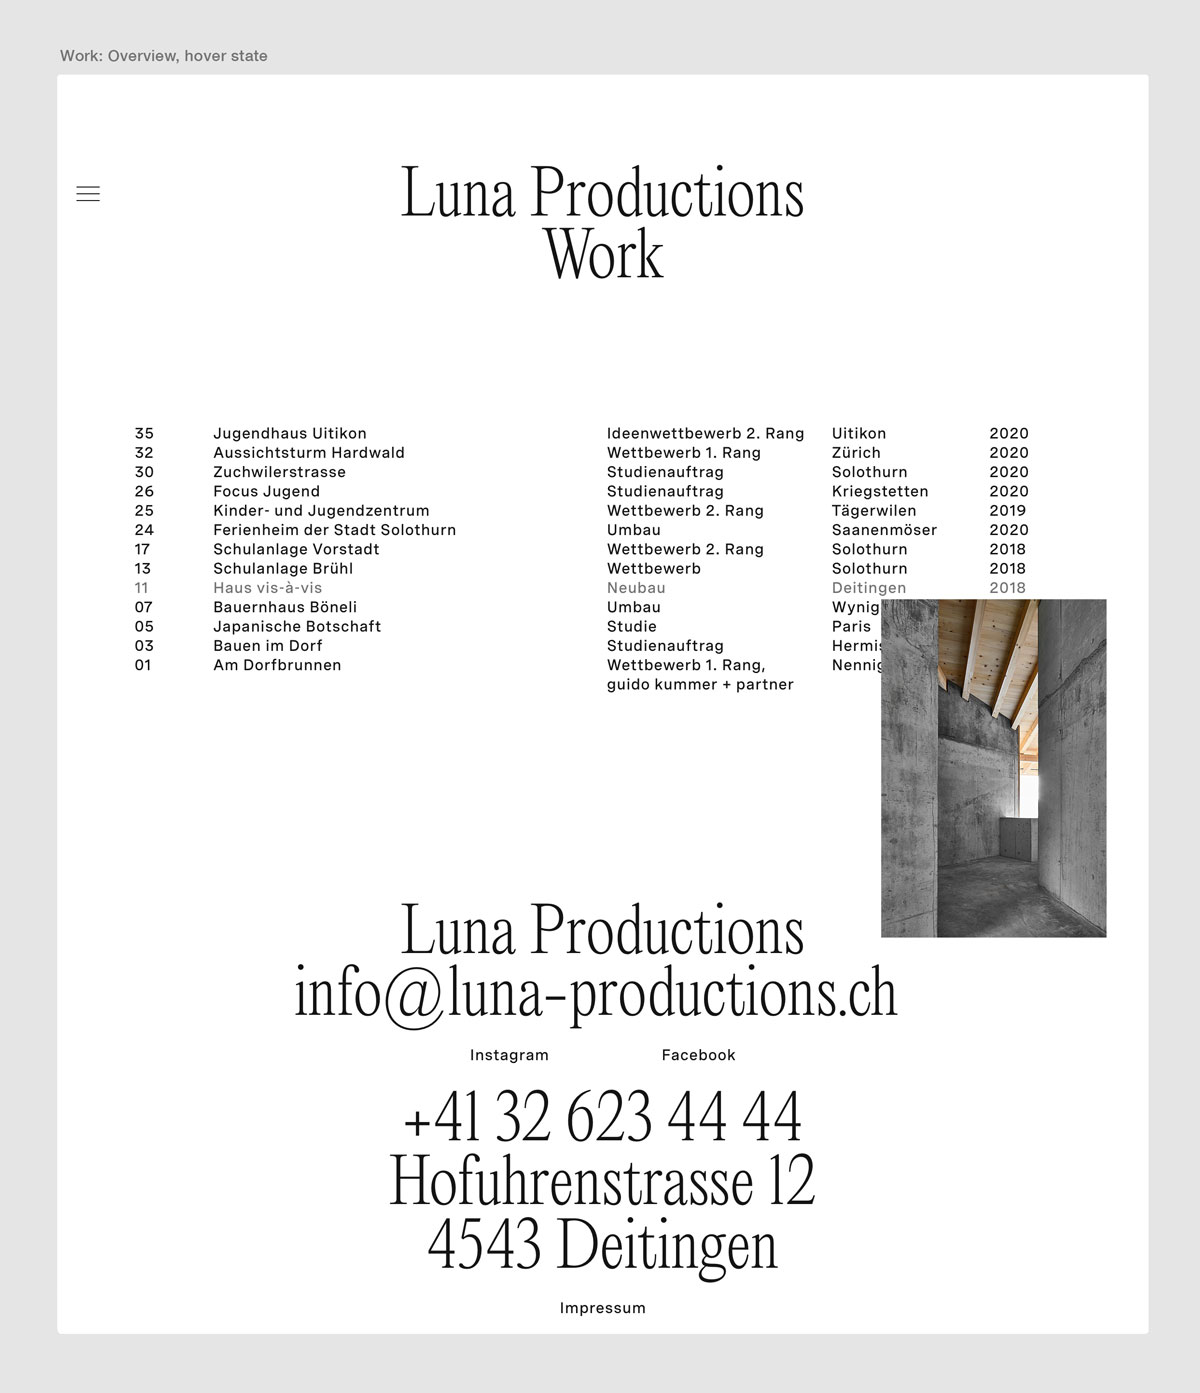 Neue Website und Corporate Identity für Luna Productions Architekten